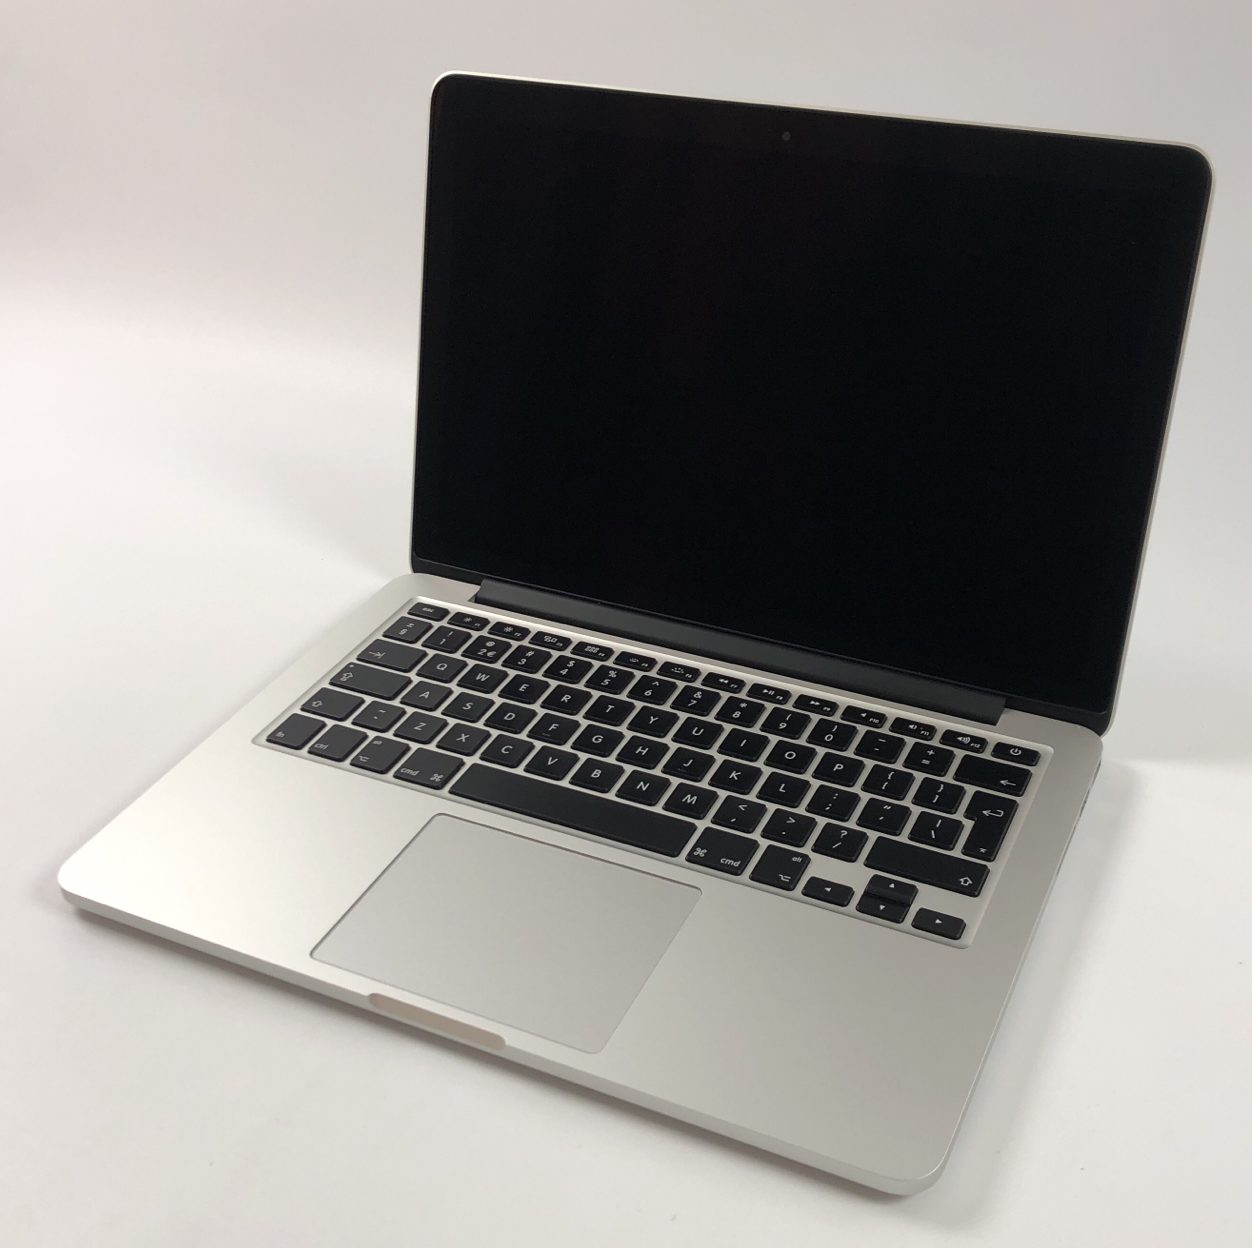 "MacBook Pro Retina 13"" Early 2015 (Intel Core i5 2.7 GHz 8 GB RAM 128 GB SSD), Intel Core i5 2.7 GHz, 8 GB RAM, 128 GB SSD, bild 1"